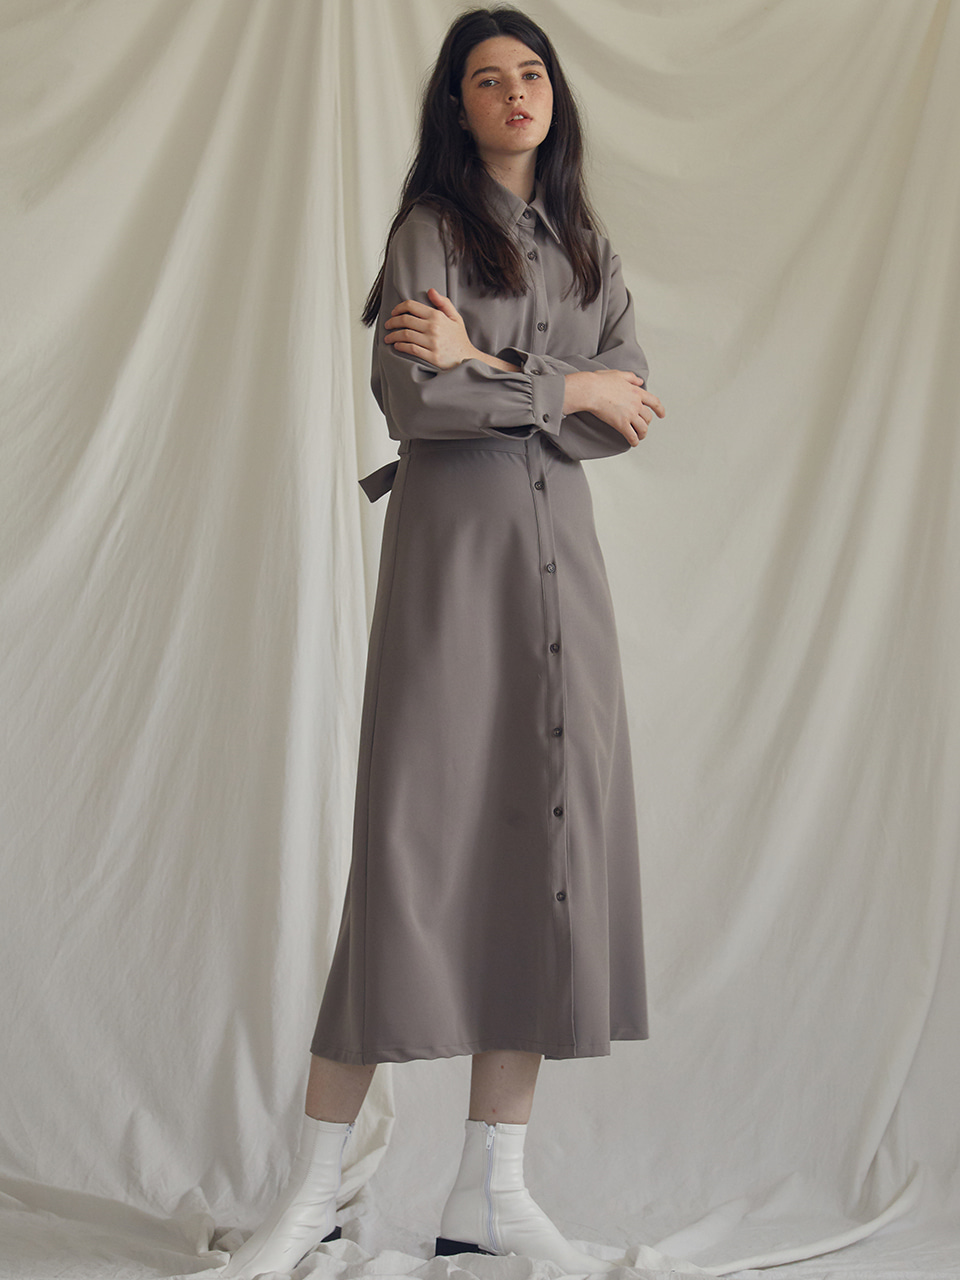 ES WAIST POINT DRESS(KHAKI)